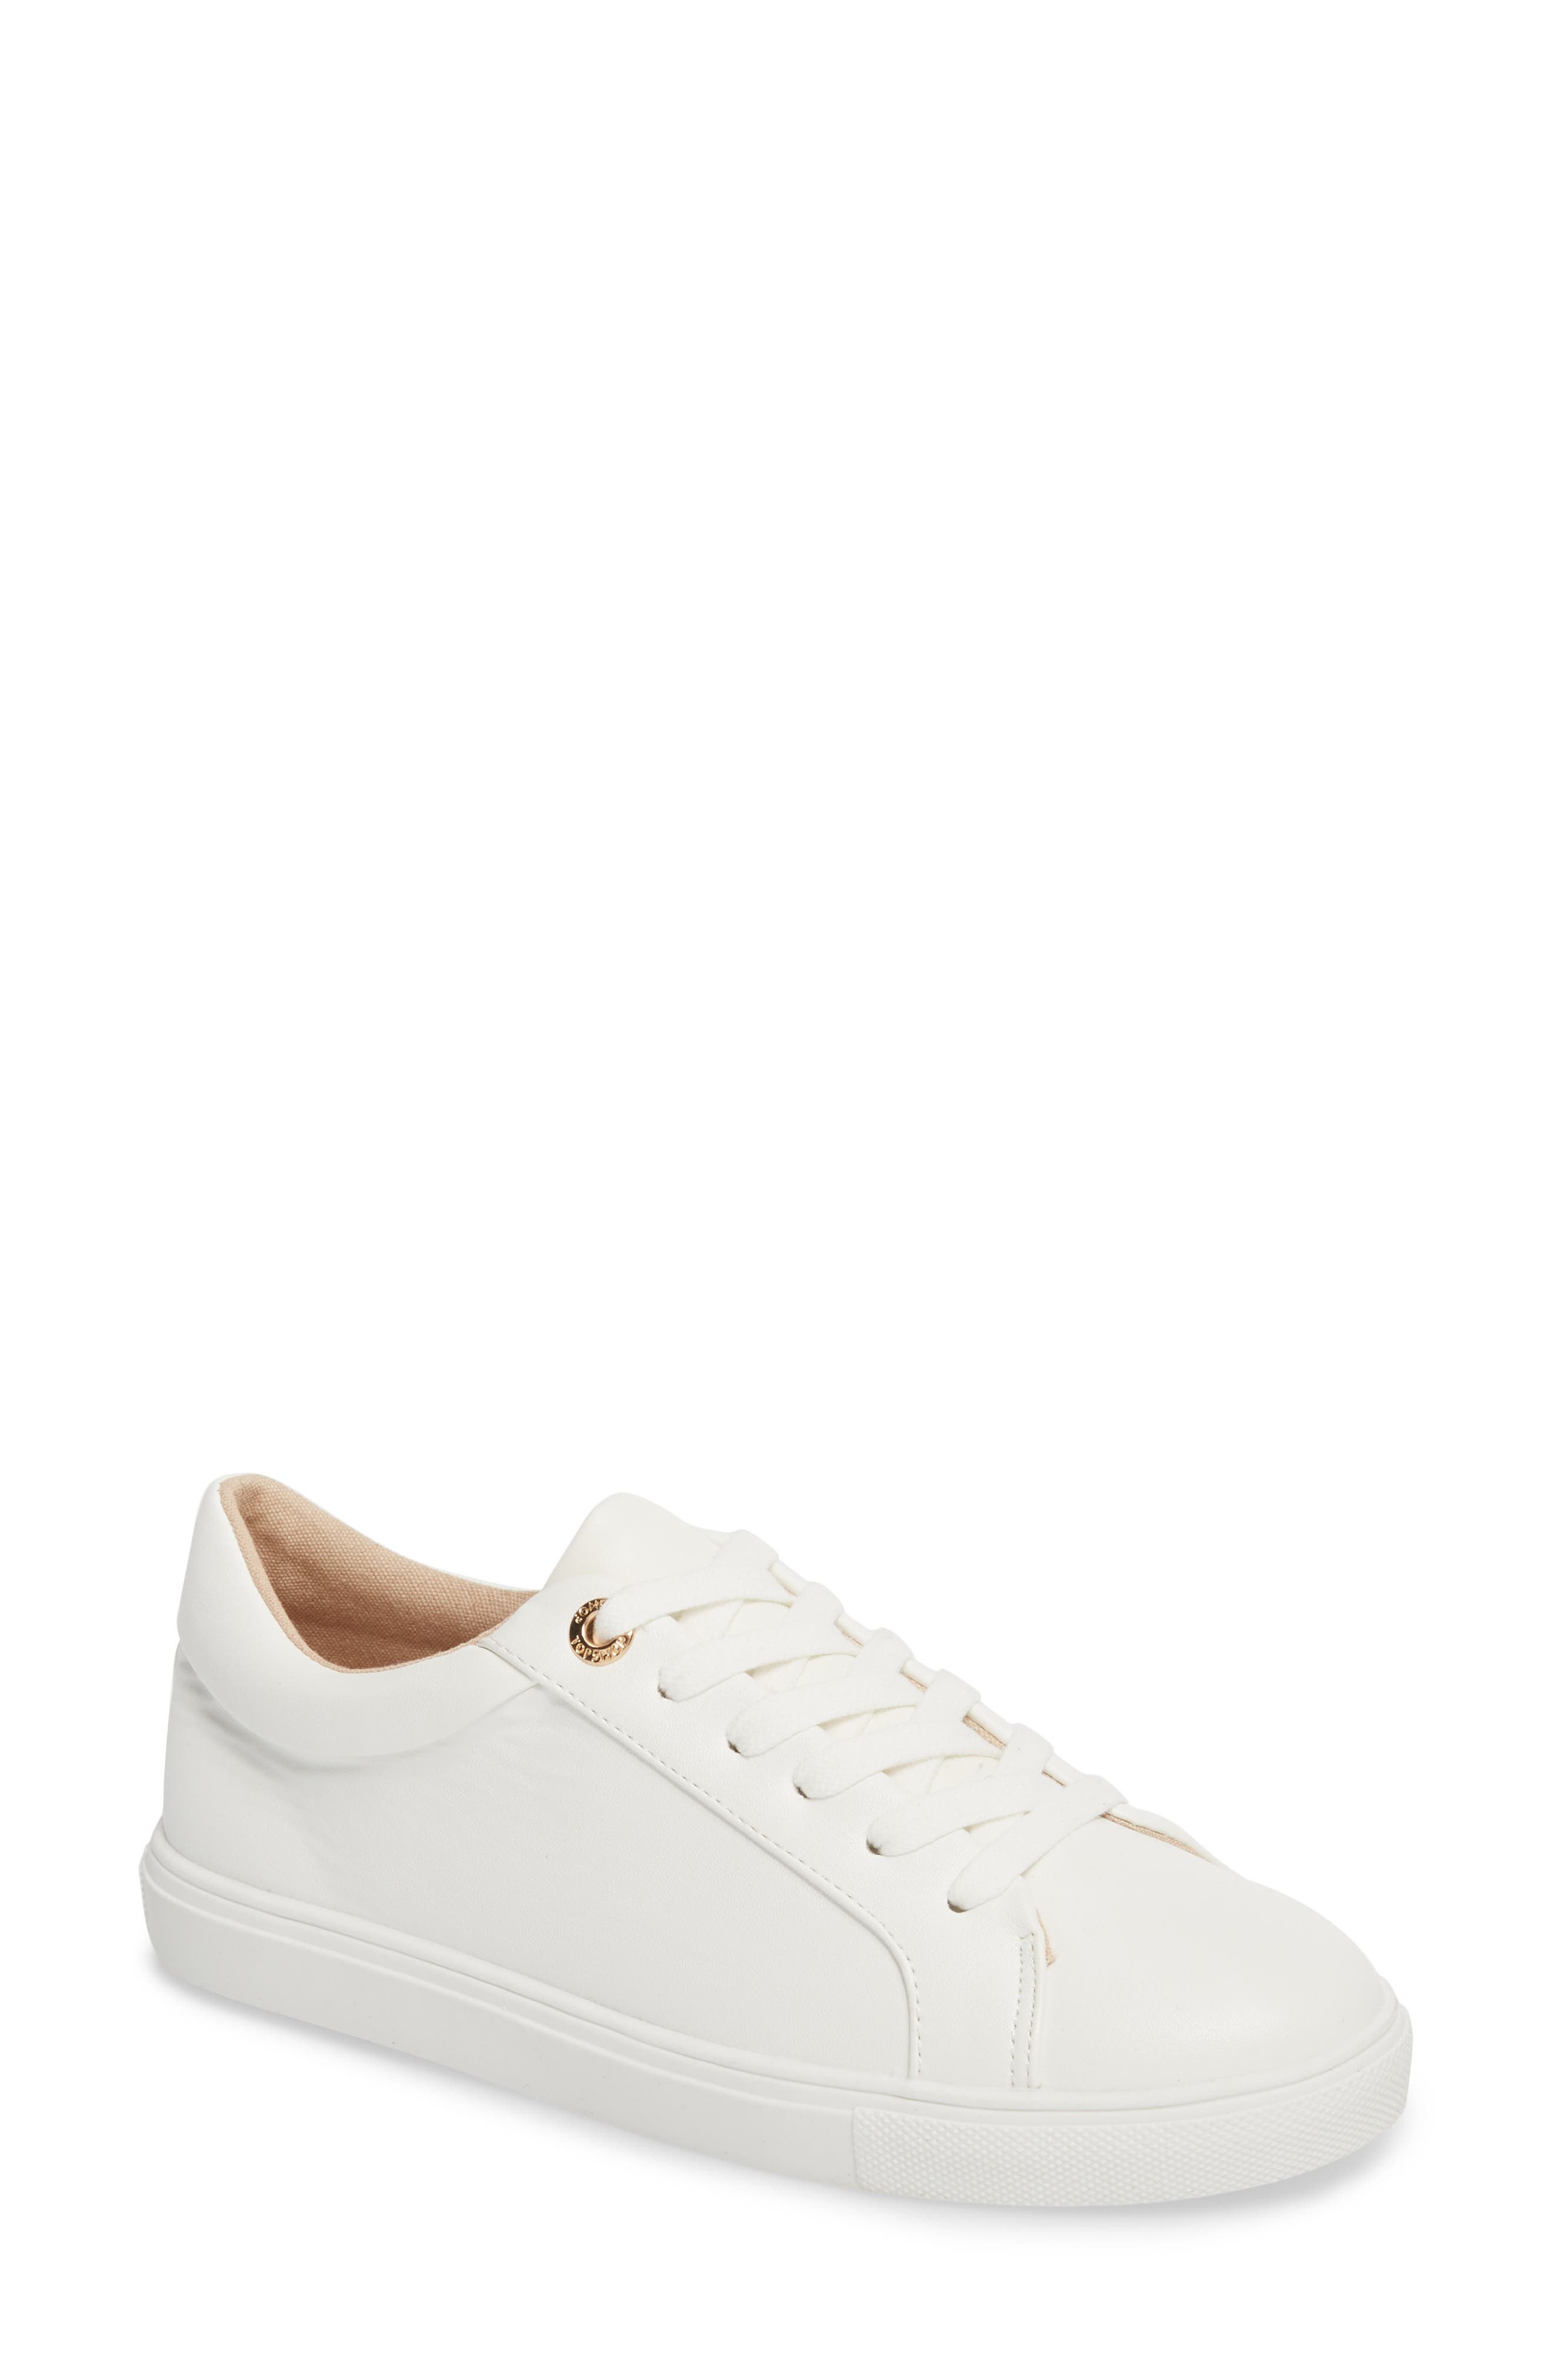 Cookie Low Top Sneaker,                             Main thumbnail 1, color,                             White